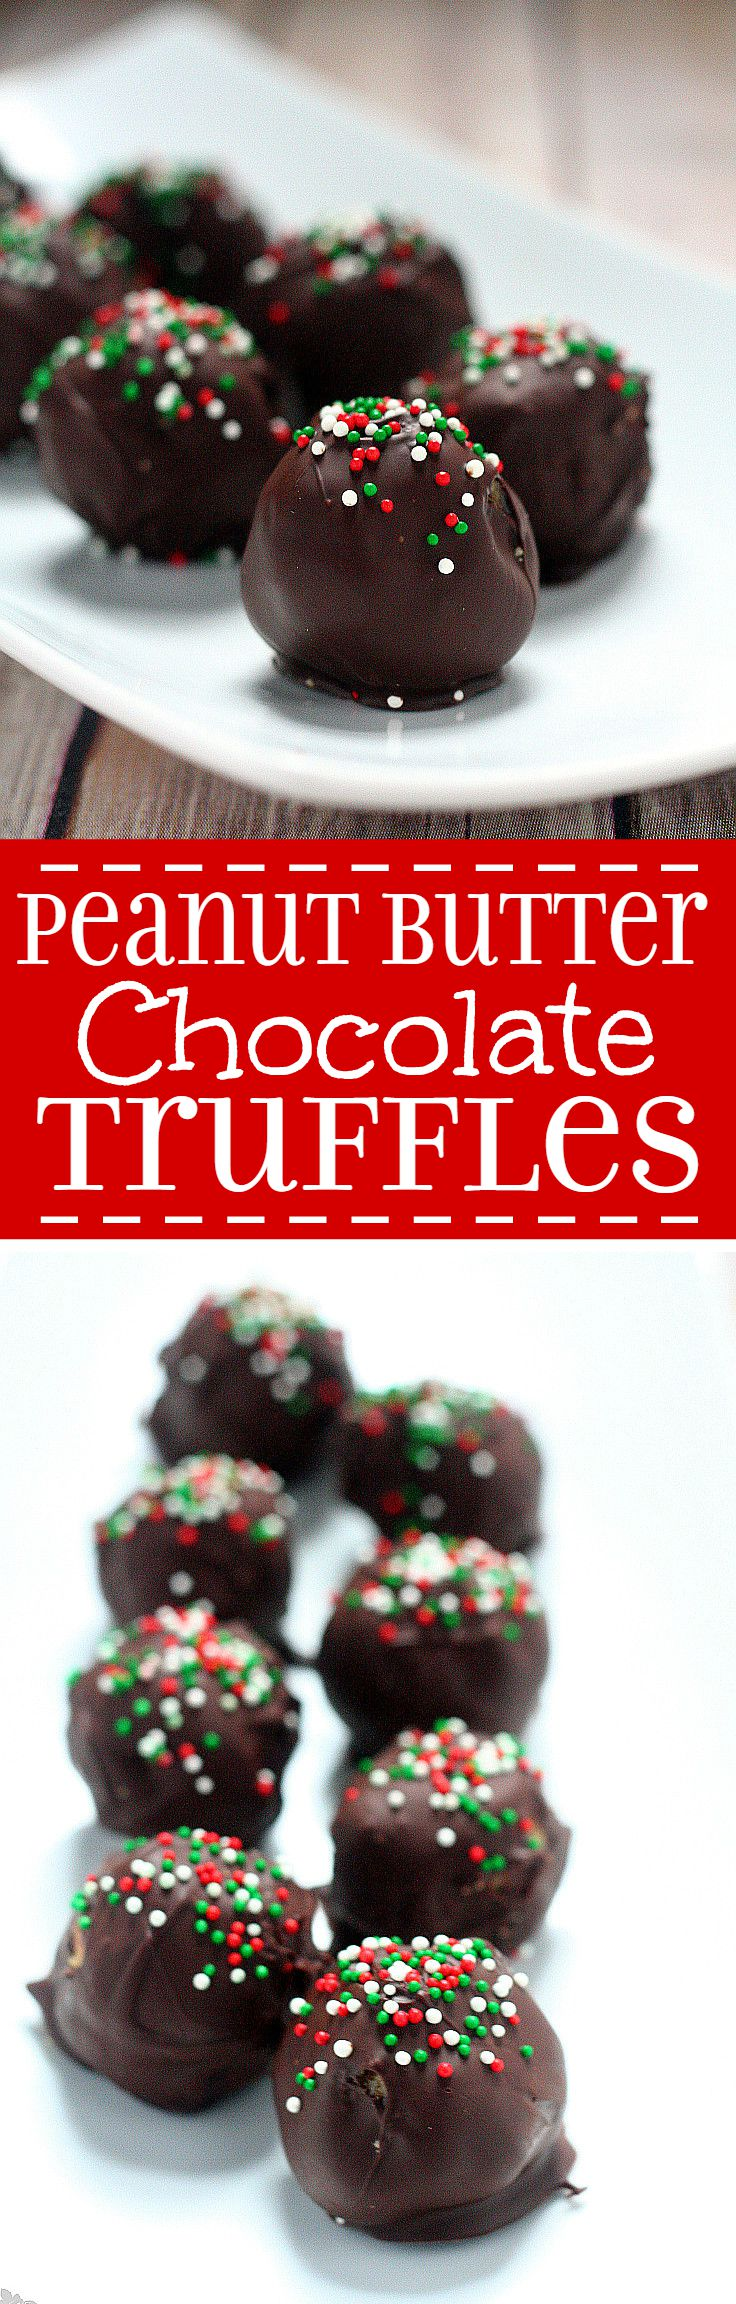 Peanut Butter Chocolate Truffles with creamy, salty peanut butter covered in decadent chocolate and festive sprinkles will be the hit at your Christmas party. This easy homemade Christmas truffles recipe is great for a Christmas cookies exchange. Mmmm.... Must try for all Reese's lovers!